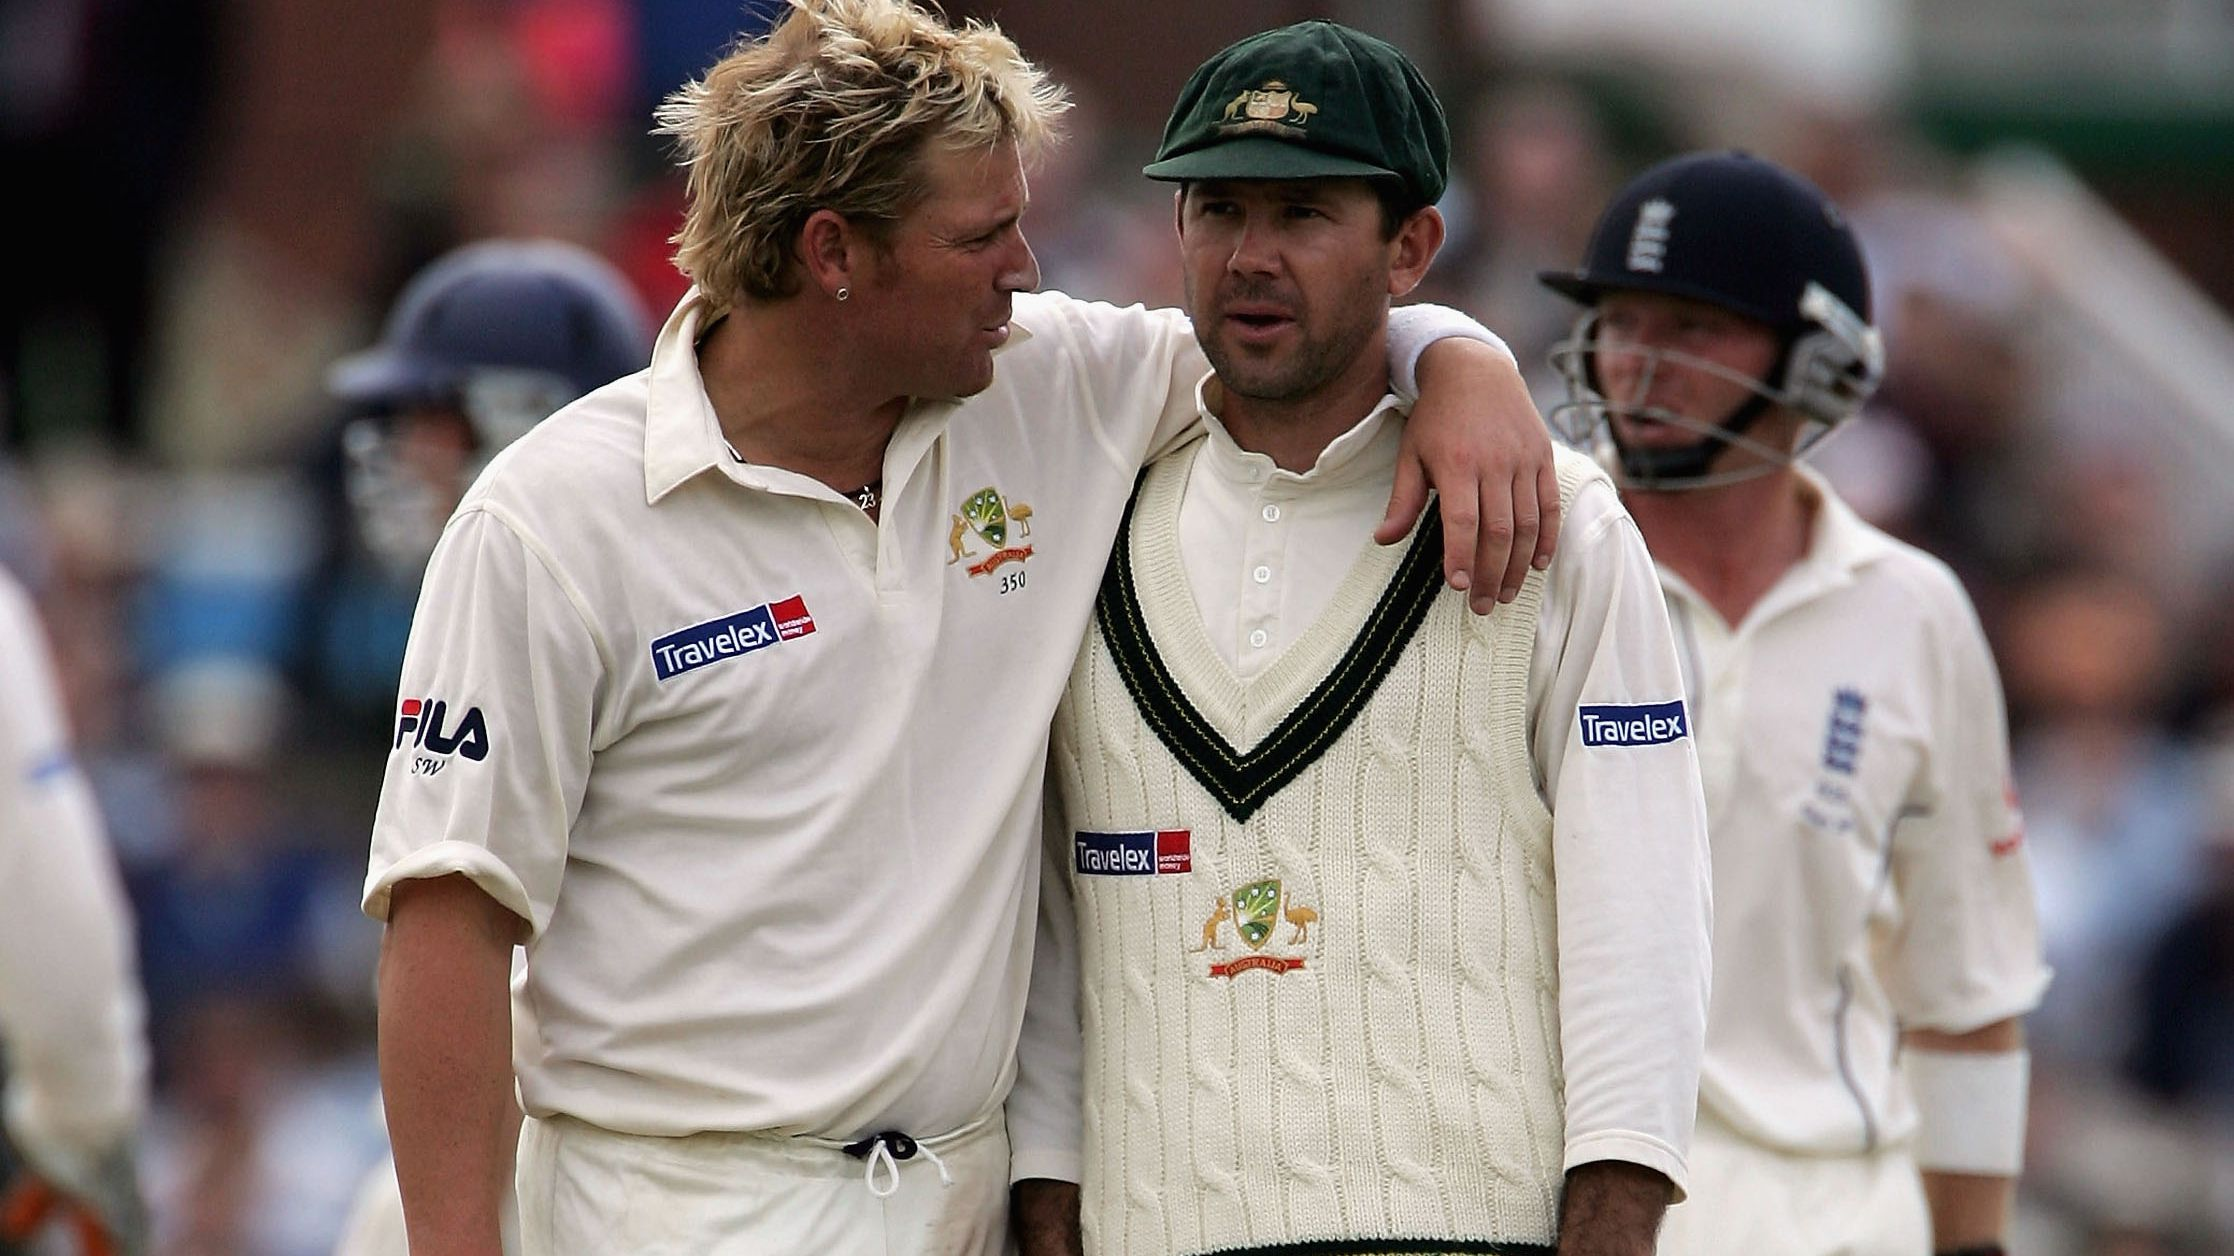 Shane Warne and Ricky Ponting